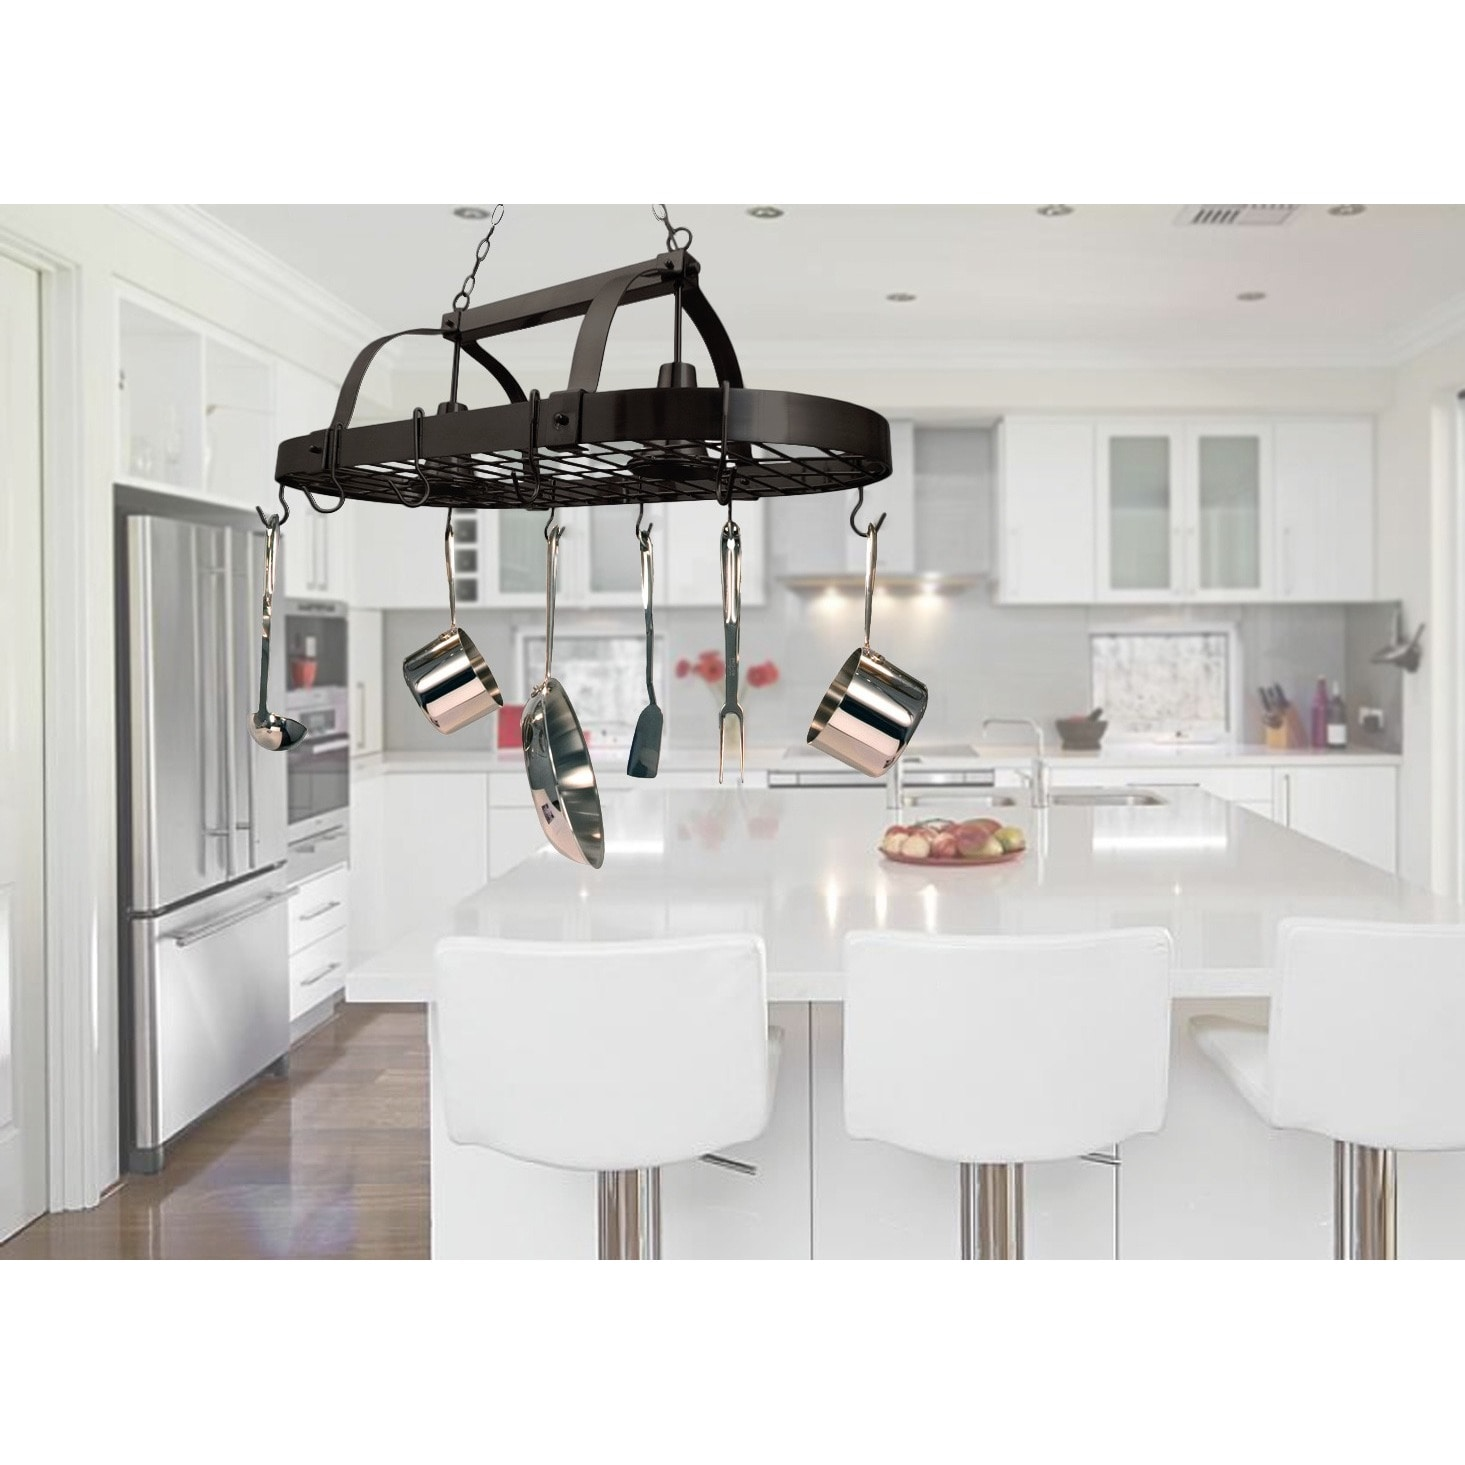 Shop Elegant Designs Home Collection Light Kitchen Pot Rack On - Kitchen pot rack light fixtures